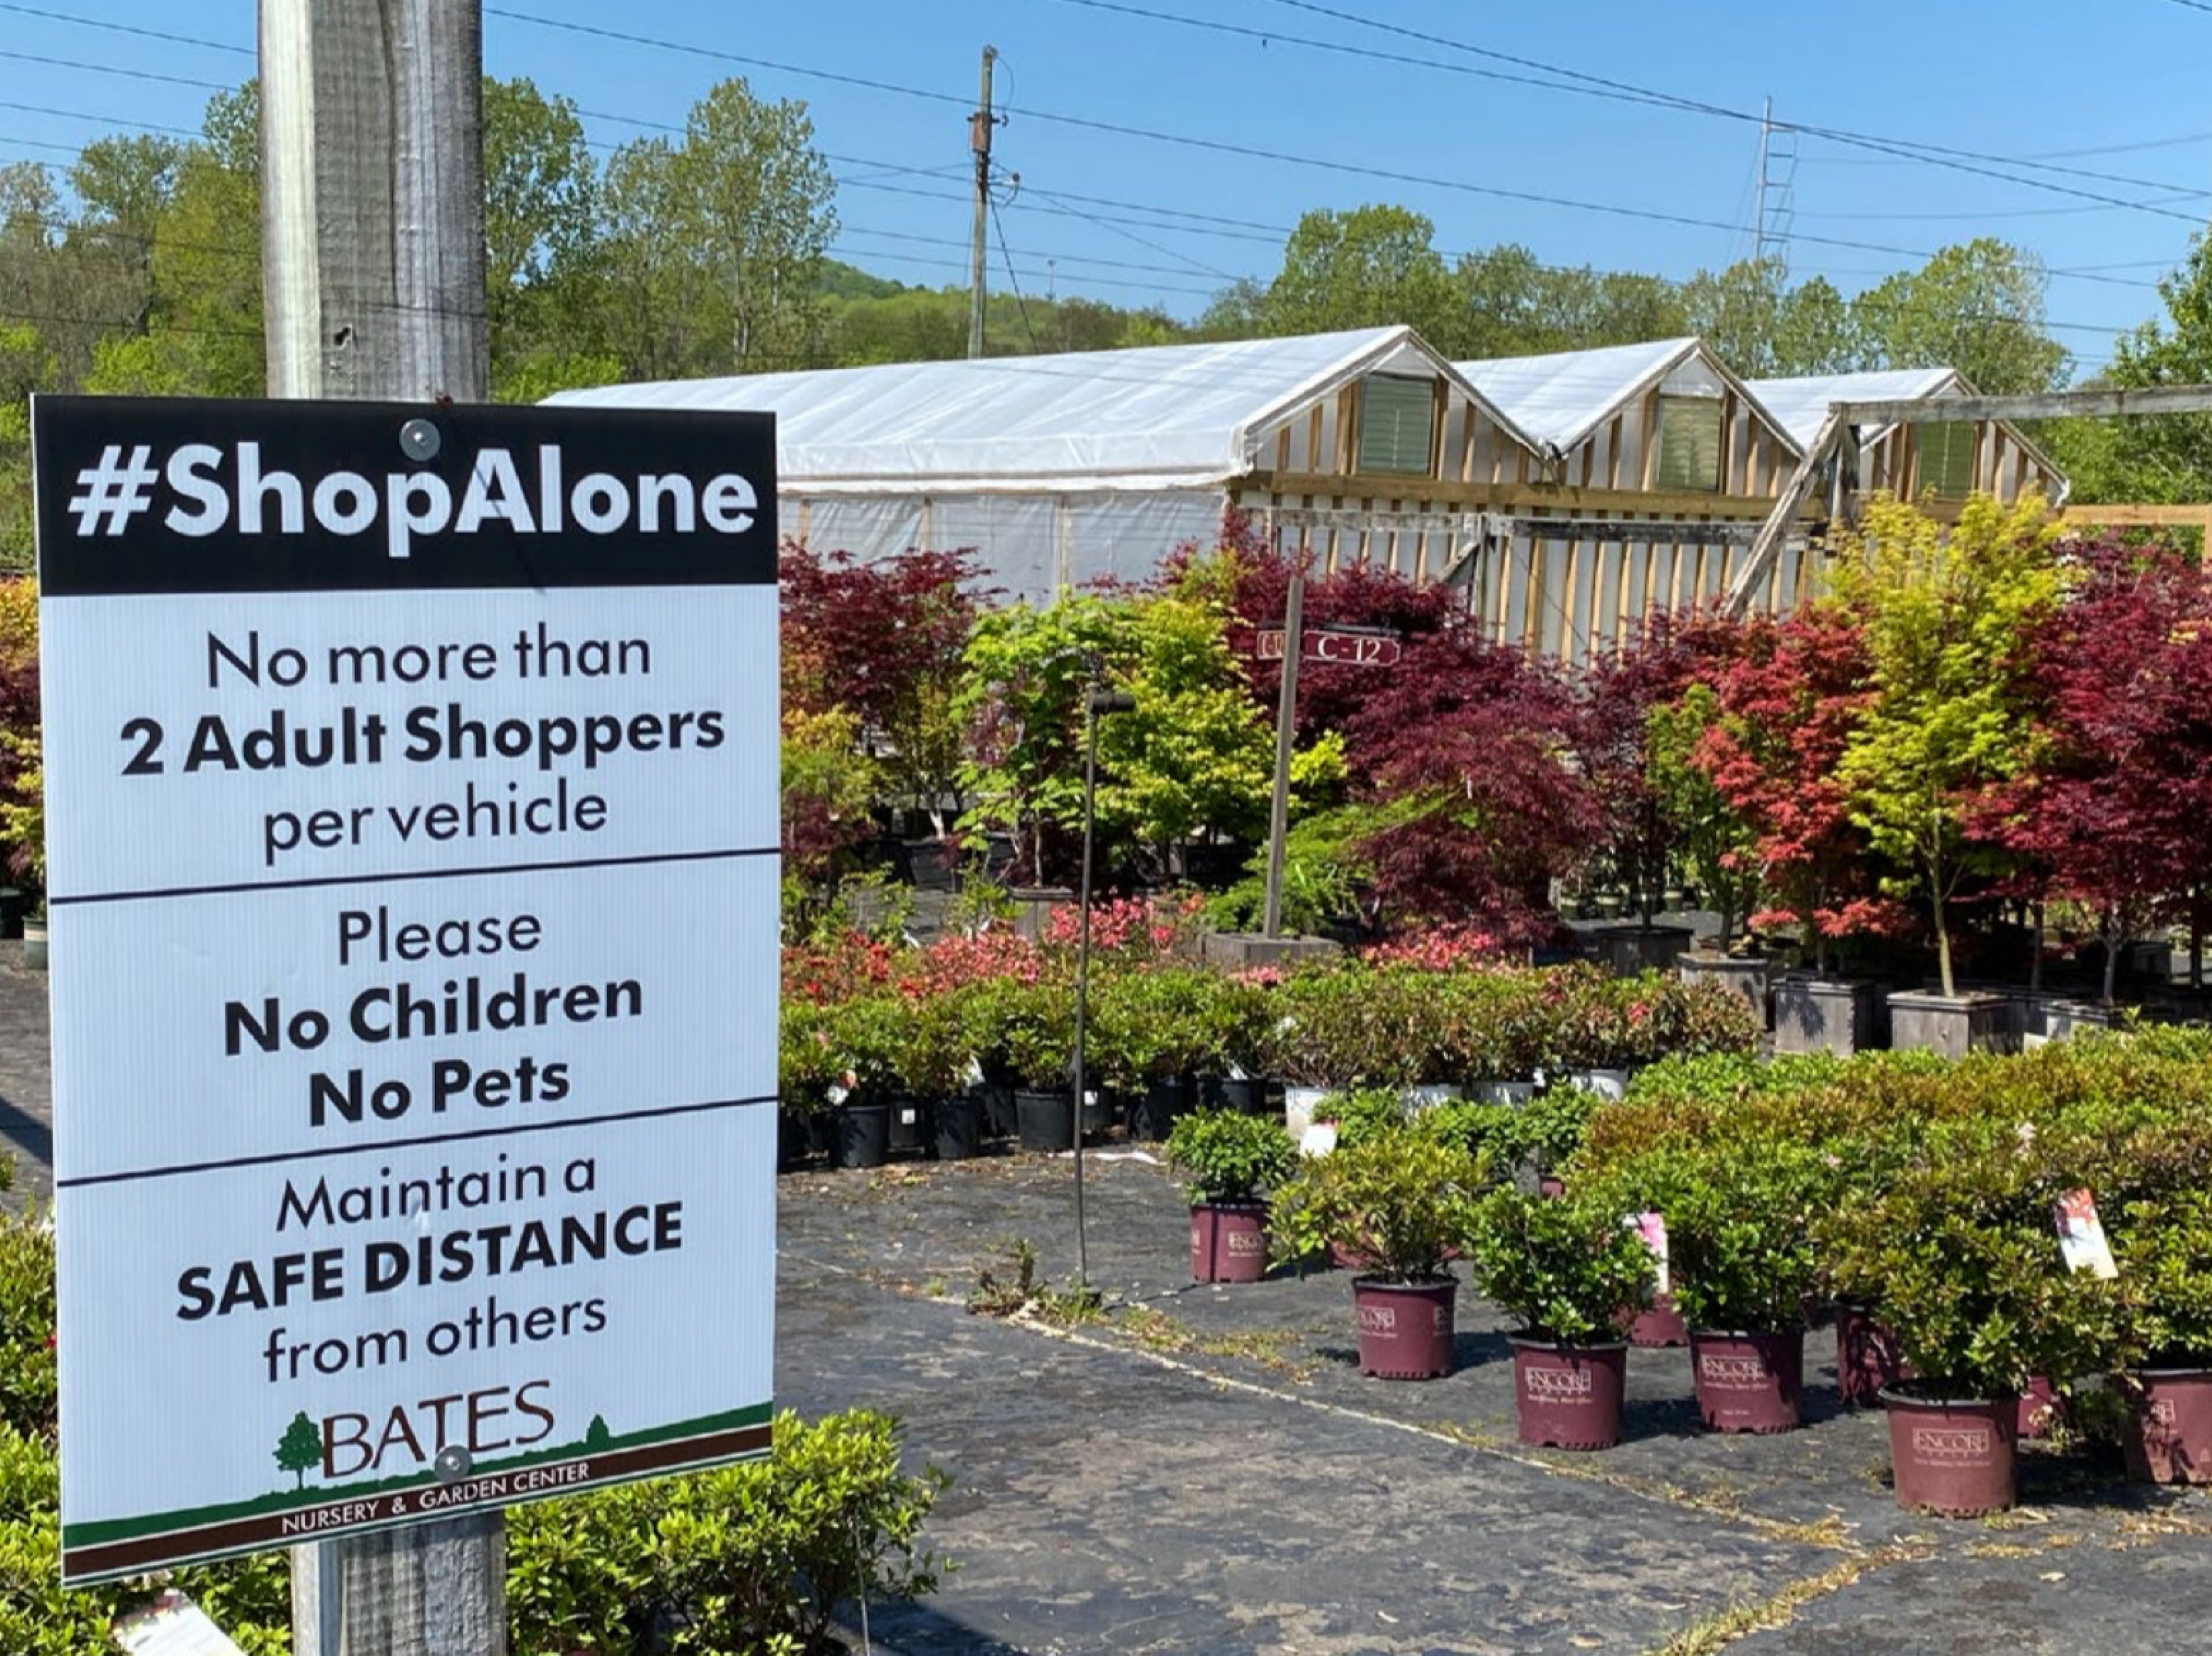 Signage in front of a garden center giving instructions on COVID-19 safety measures